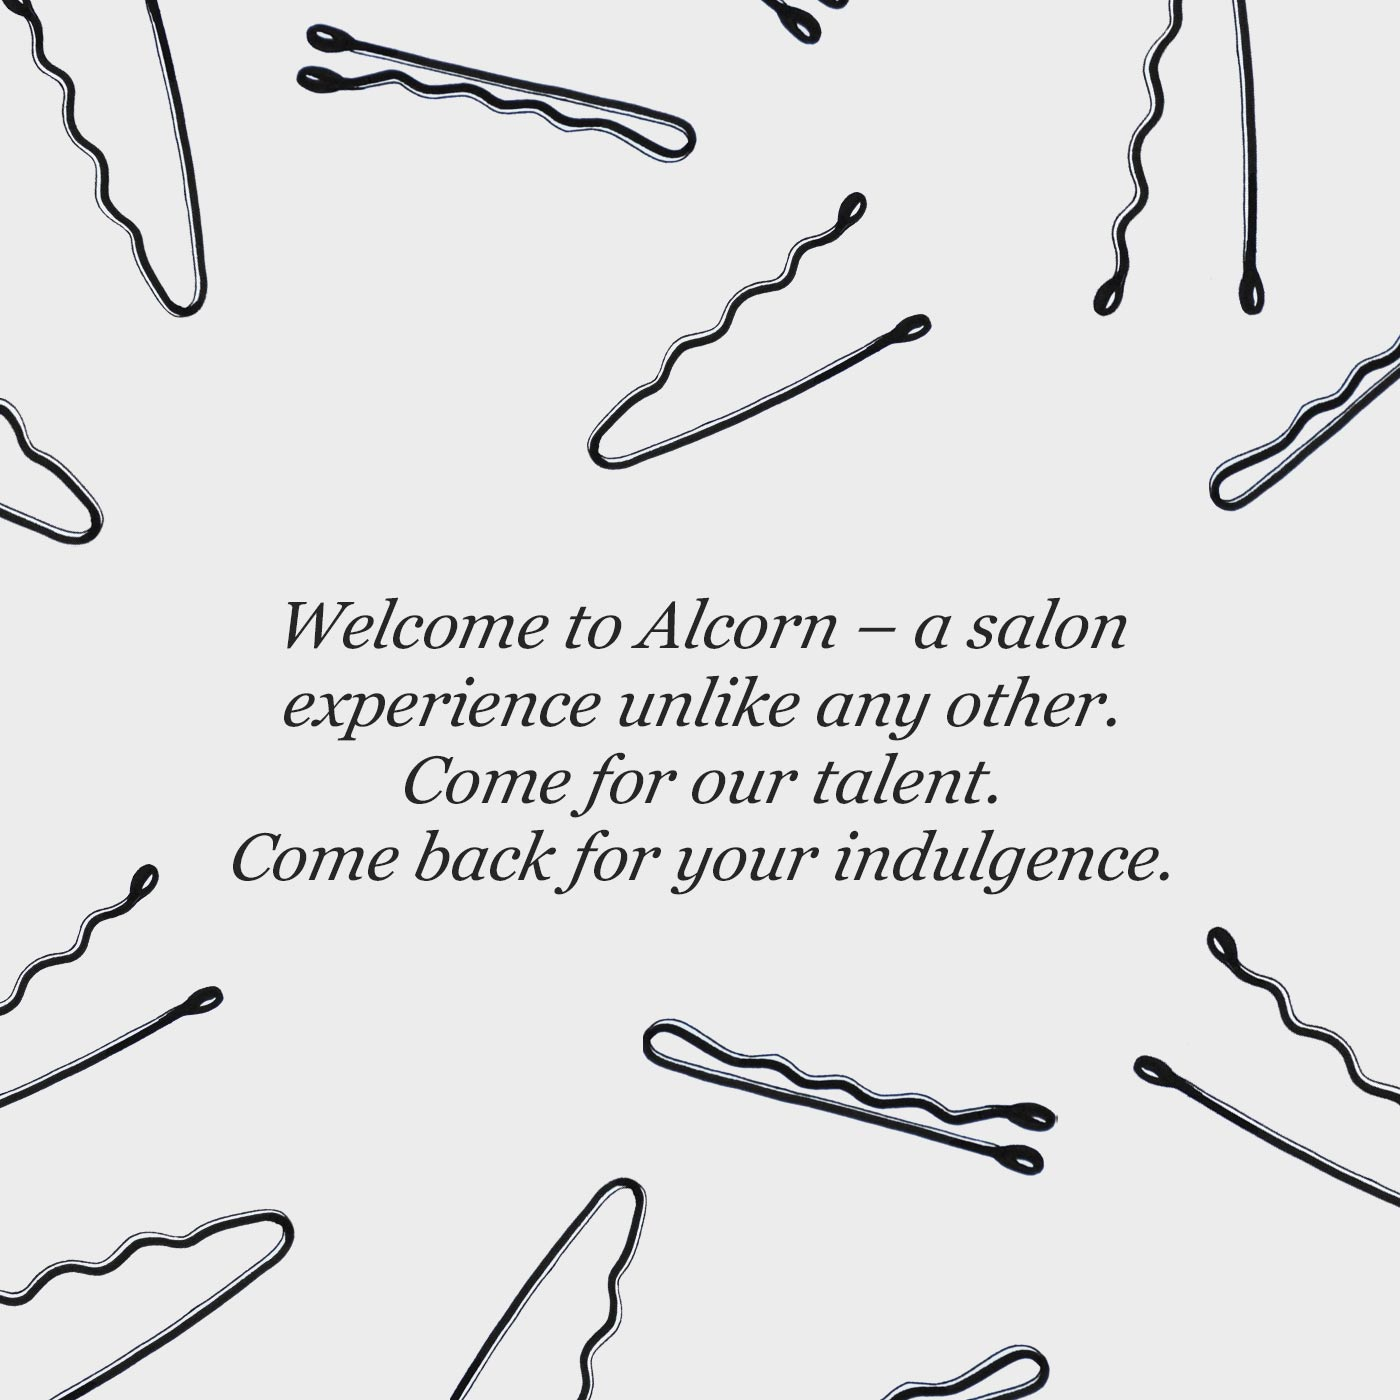 Alcorn Hair - a salon experience unlike any other